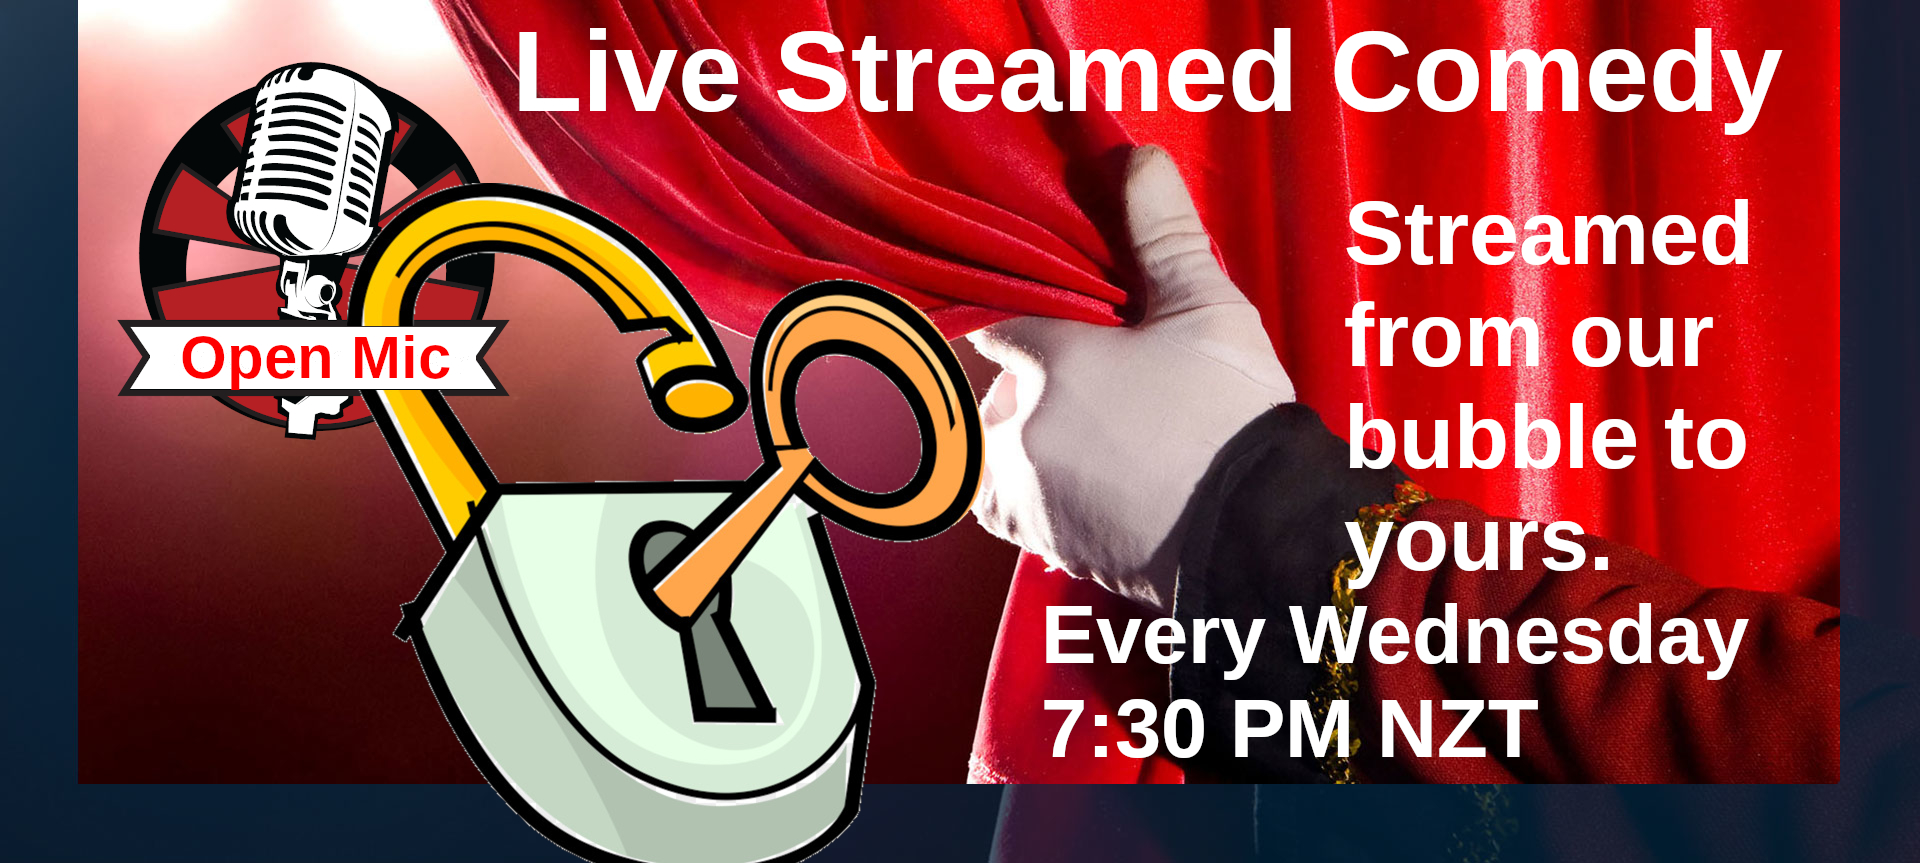 Live Streamed Comedy